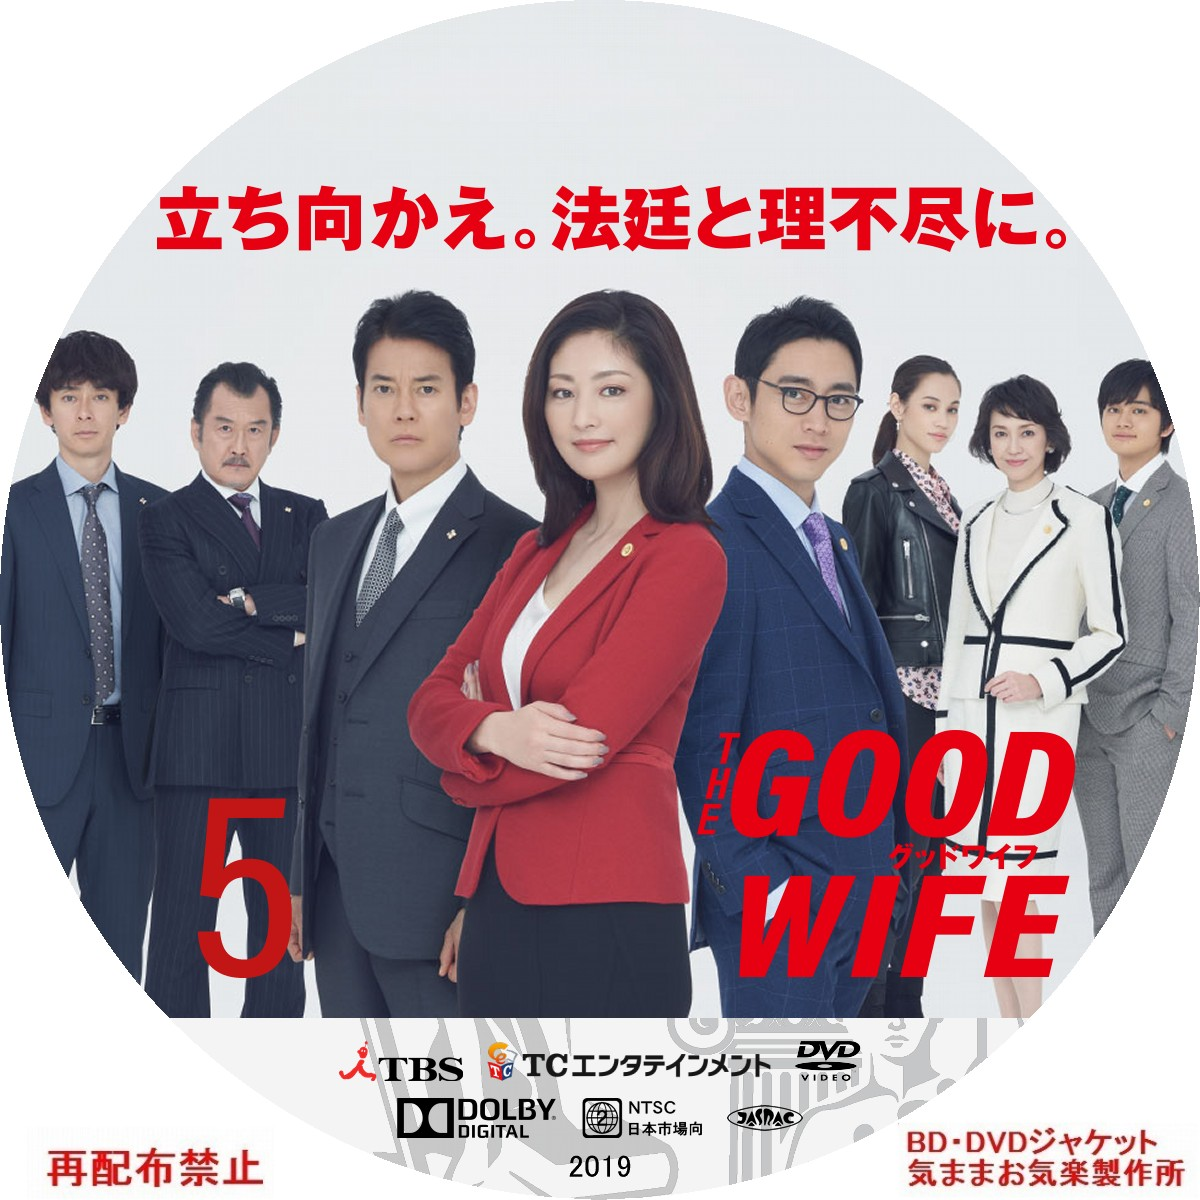 THE_GOOD_WIFE_DVD05_r.jpg